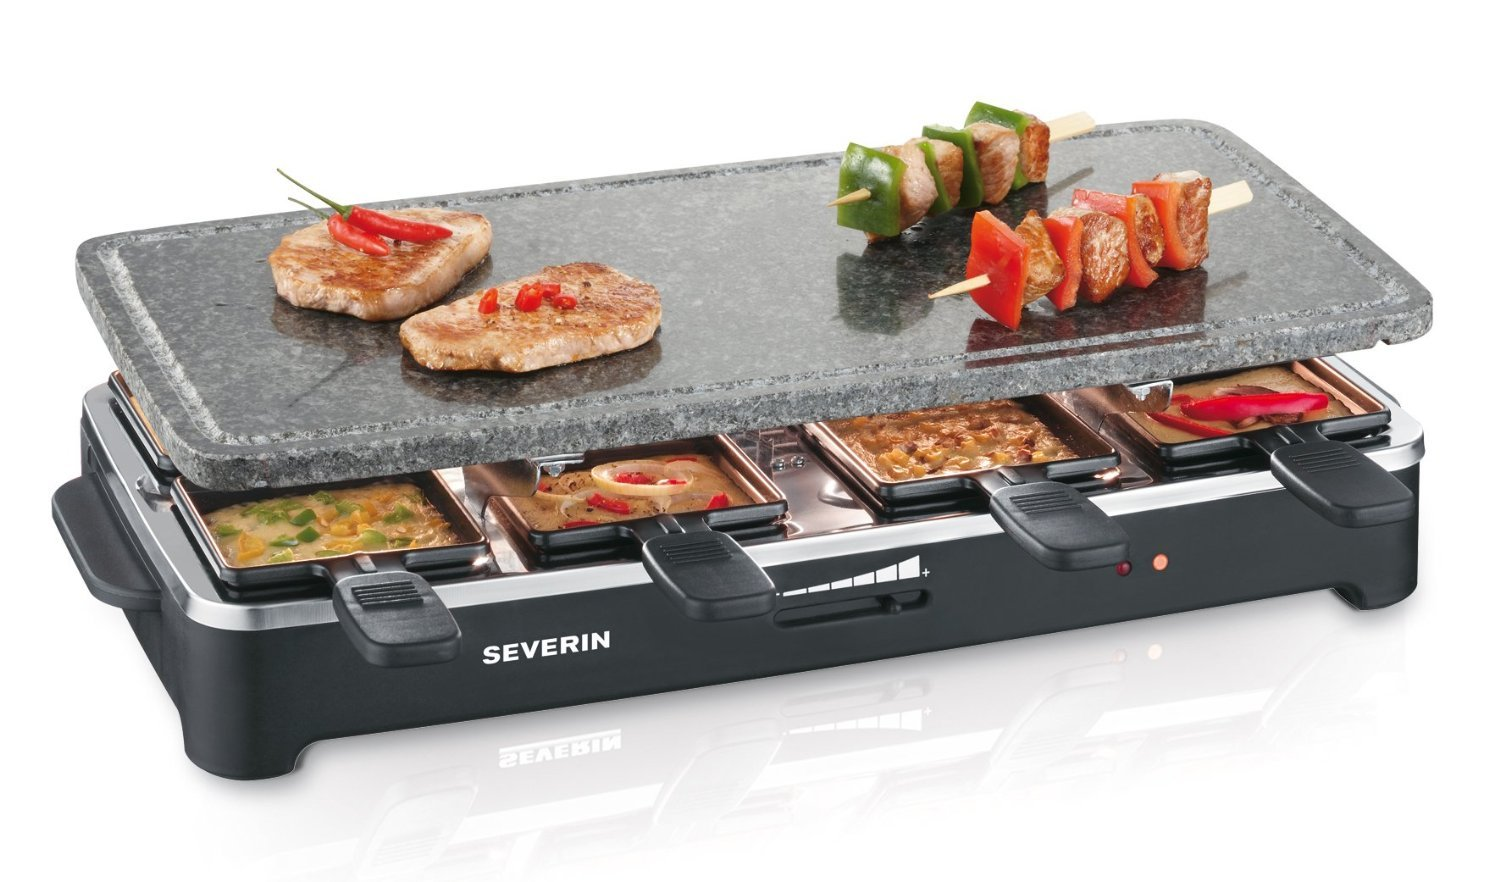 severin rg2343 barbecue raclette party grill with natural. Black Bedroom Furniture Sets. Home Design Ideas